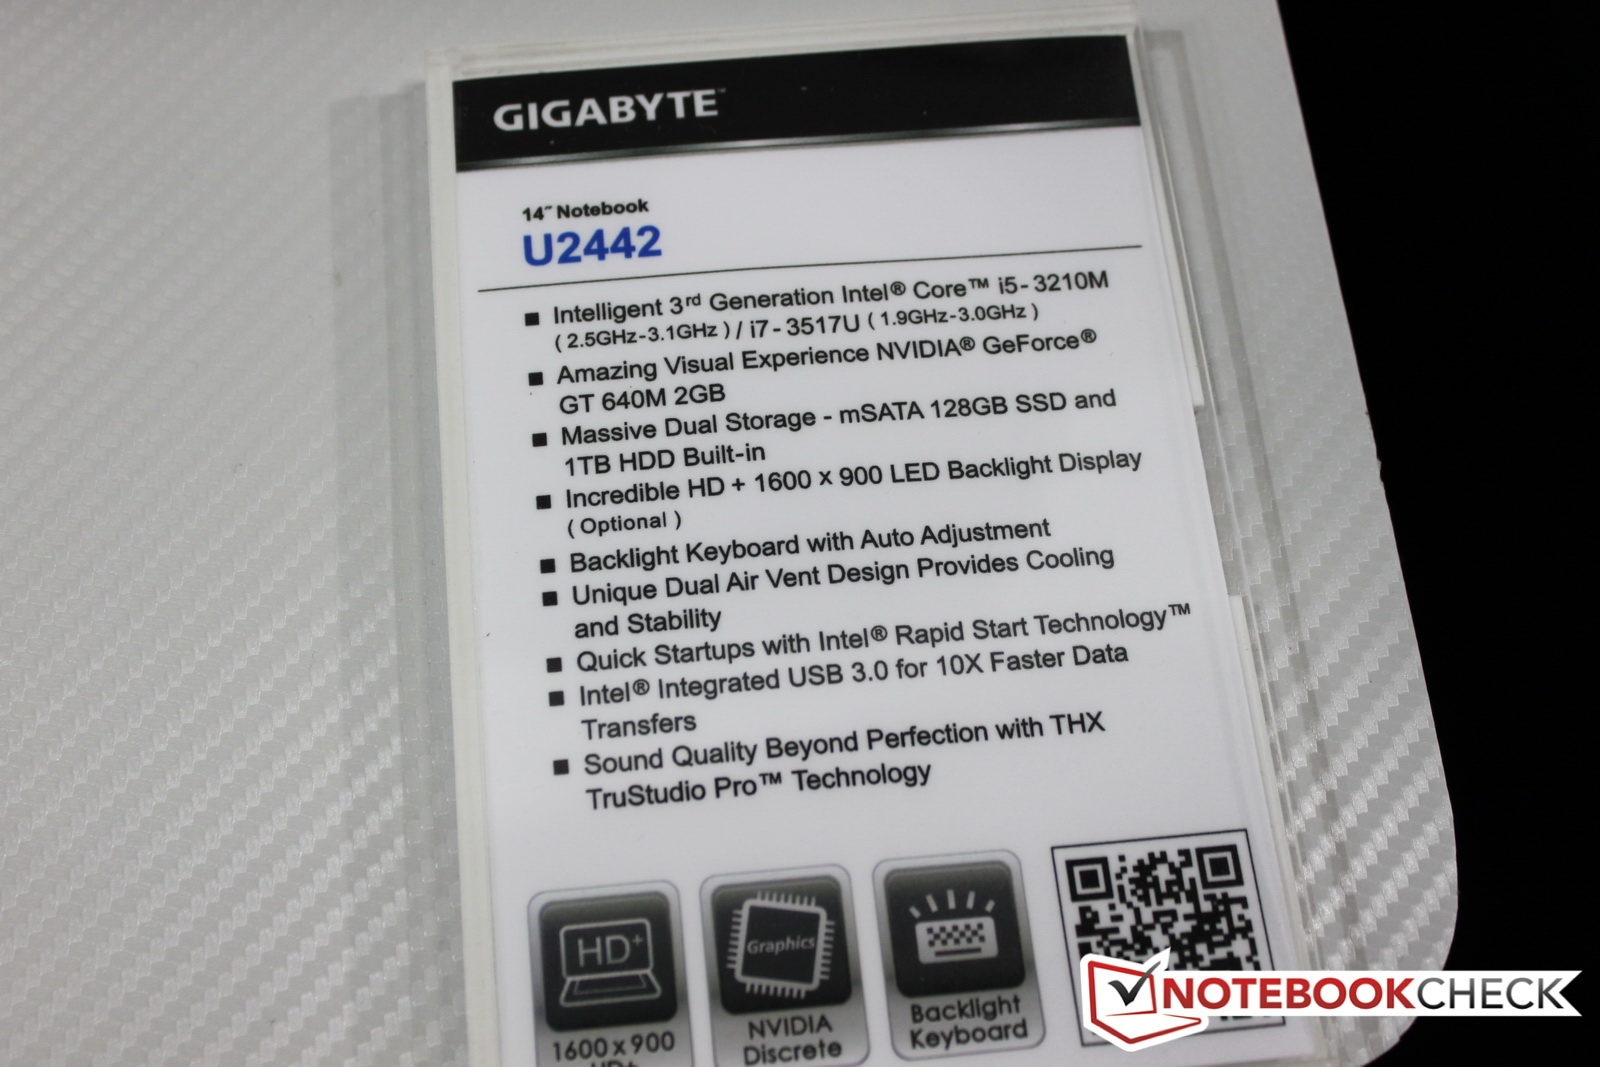 Gigabyte U2440M Notebook Intel Rapid Storage Technology Treiber Herunterladen